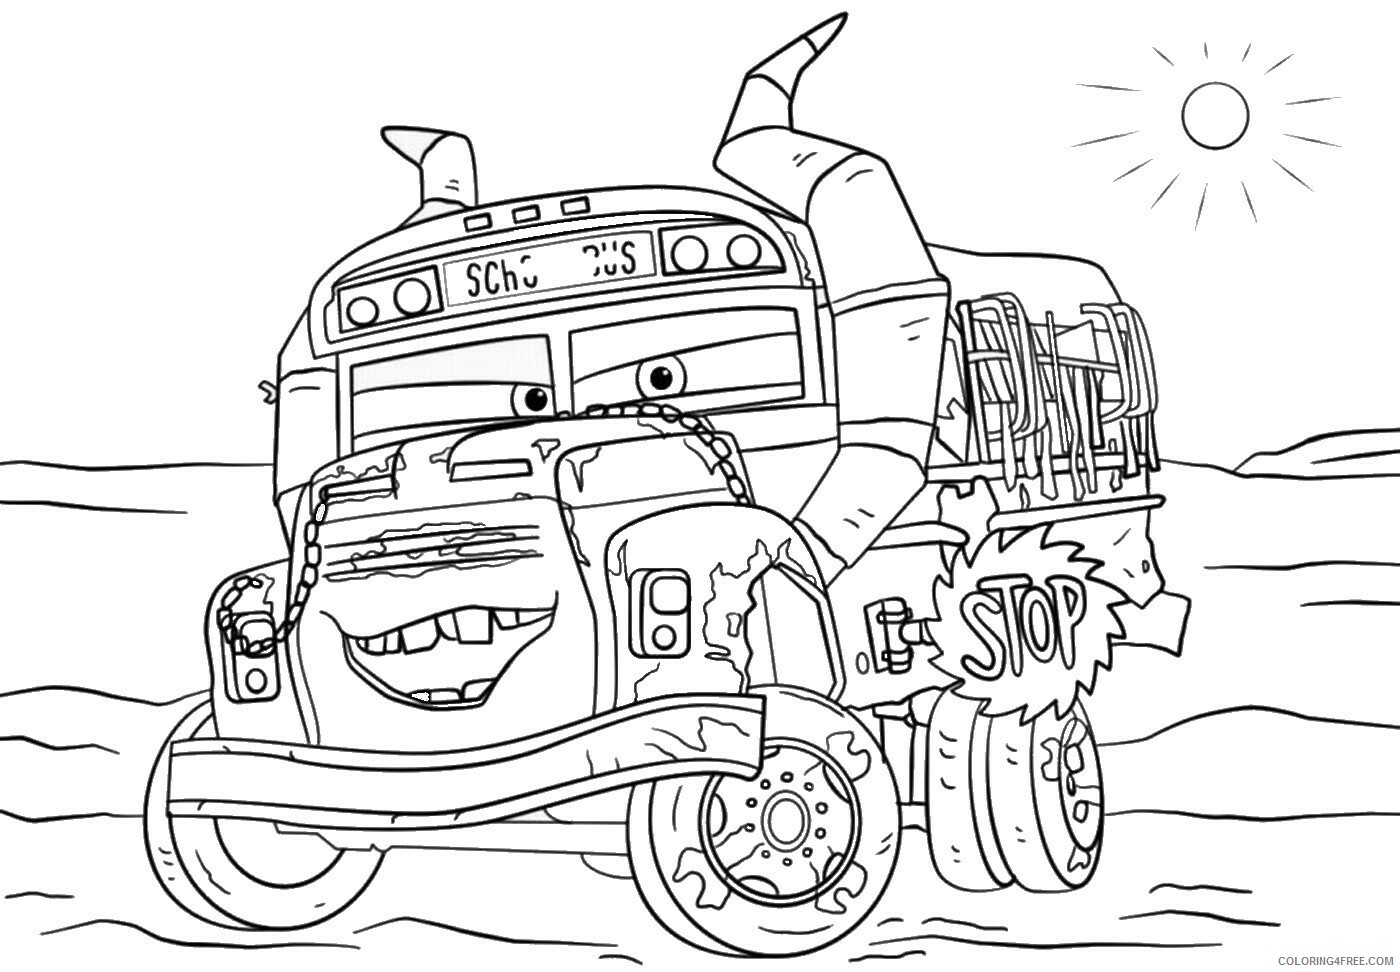 Cars Coloring Pages TV Film cars3 movie3 Printable 2020 01805 Coloring4free